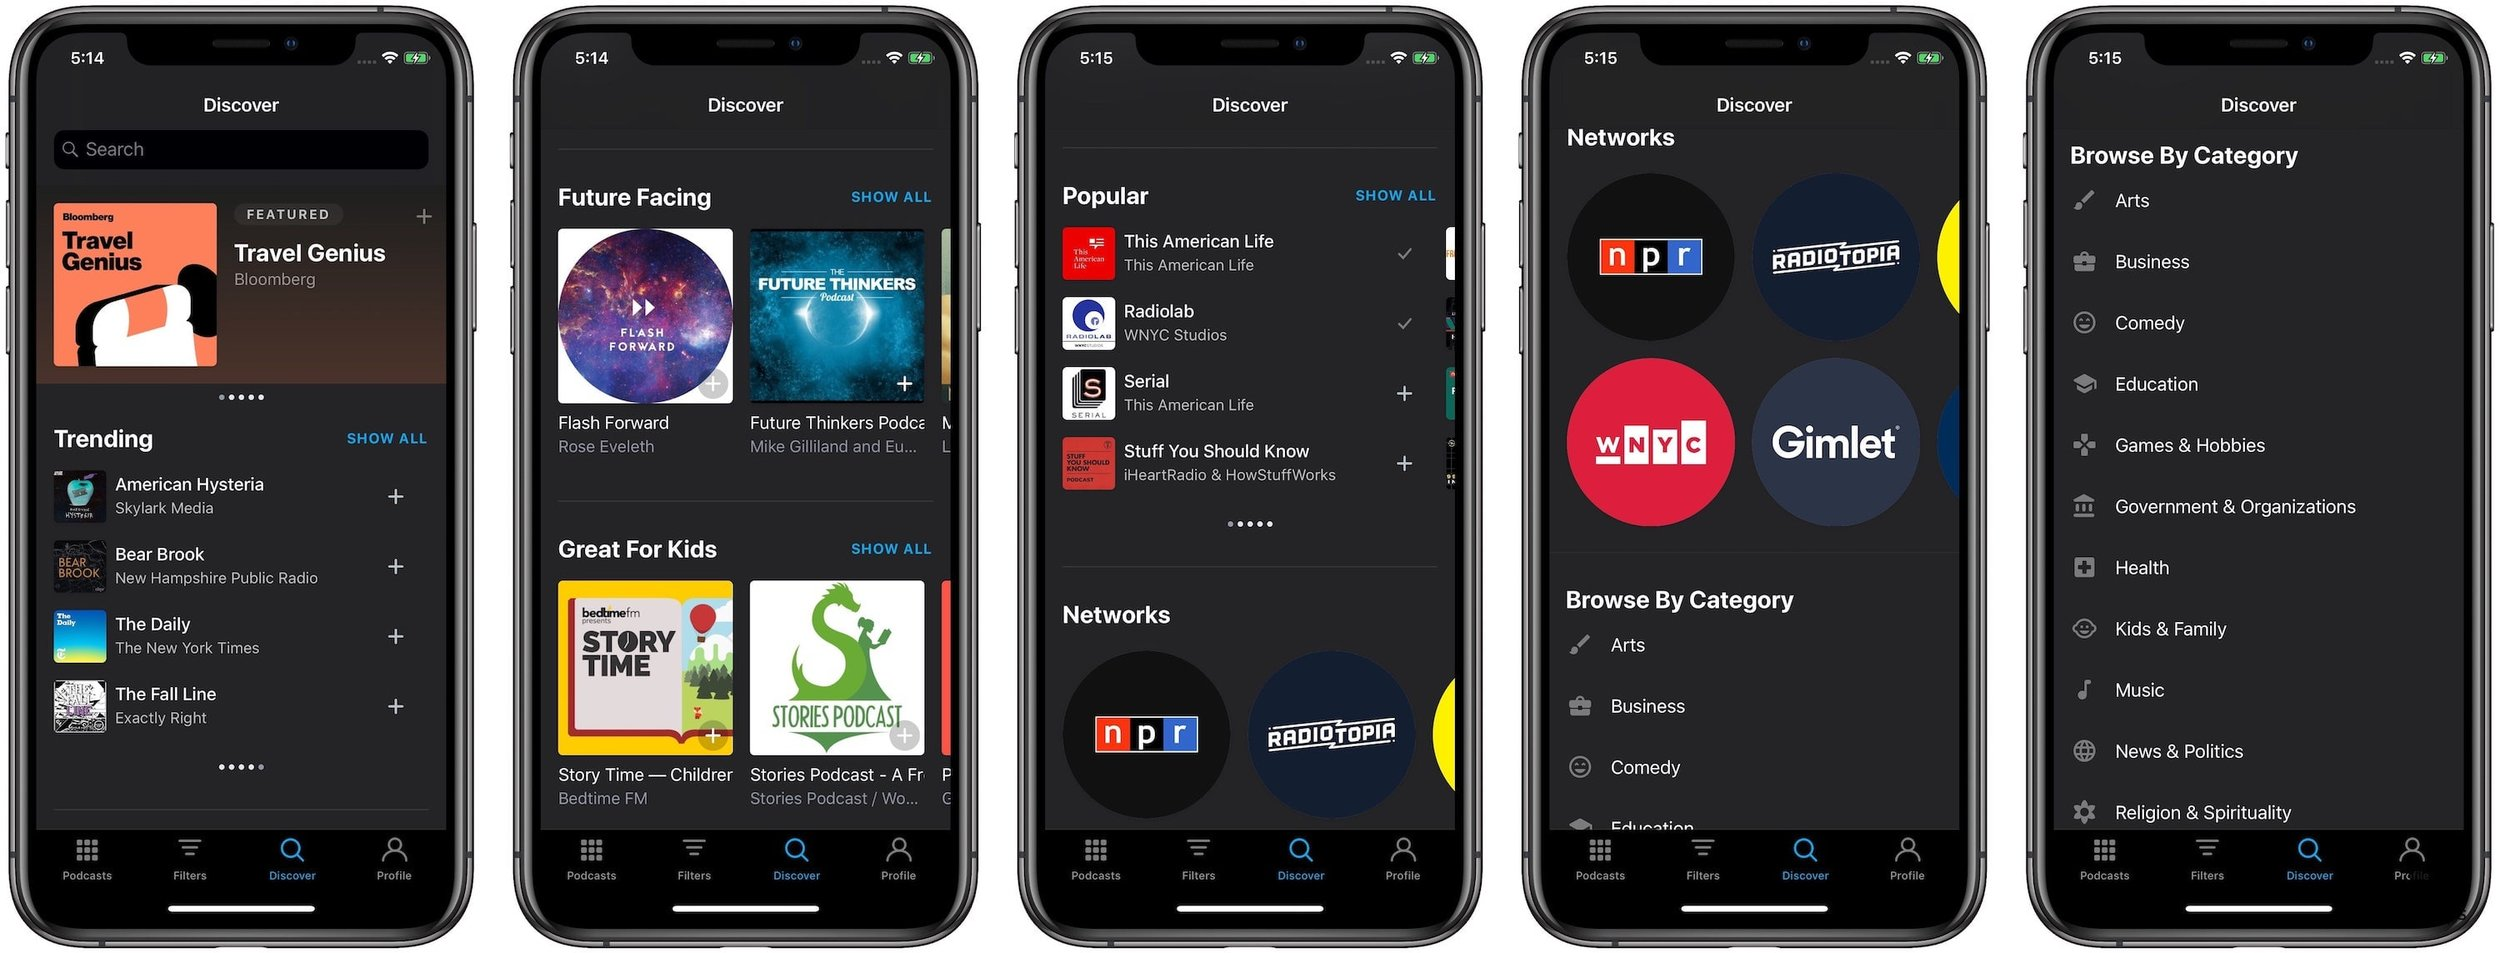 Pocket Casts Review - Discover Tab